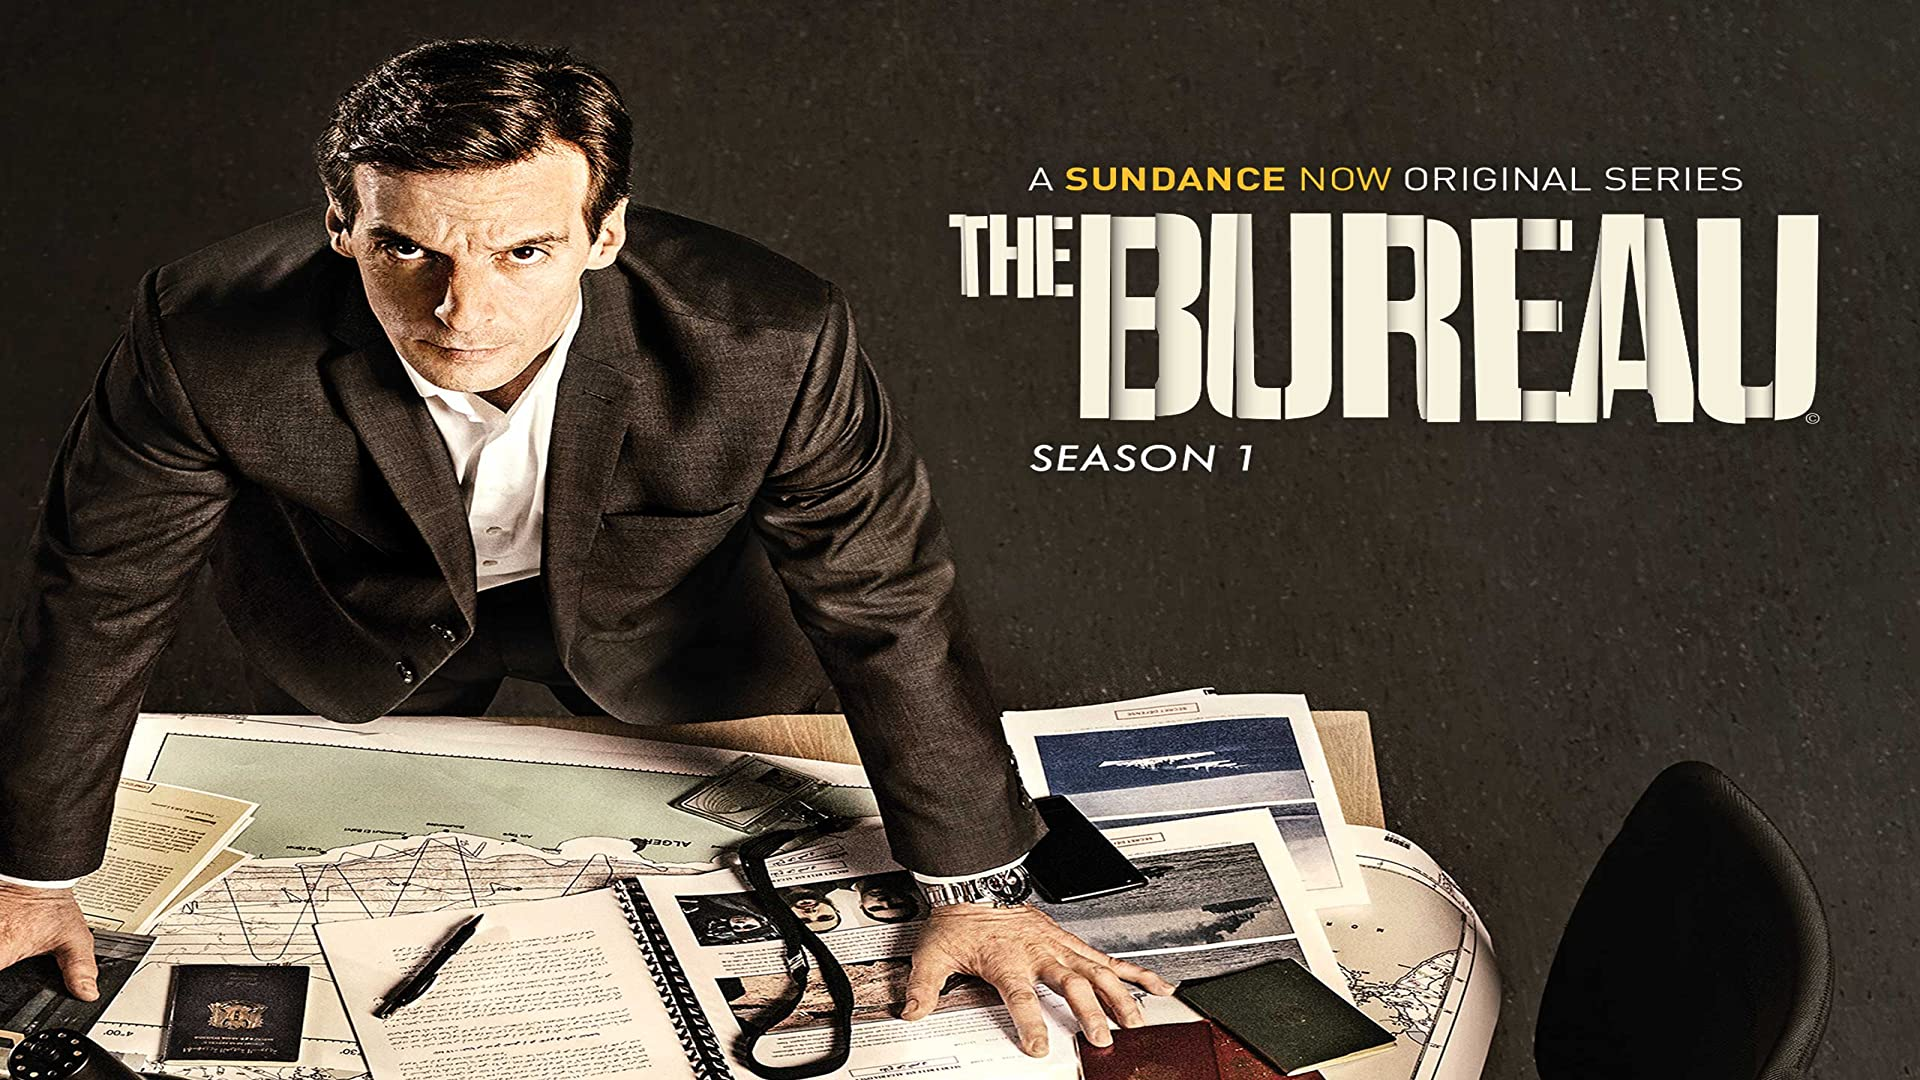 The Bureau - Season 1